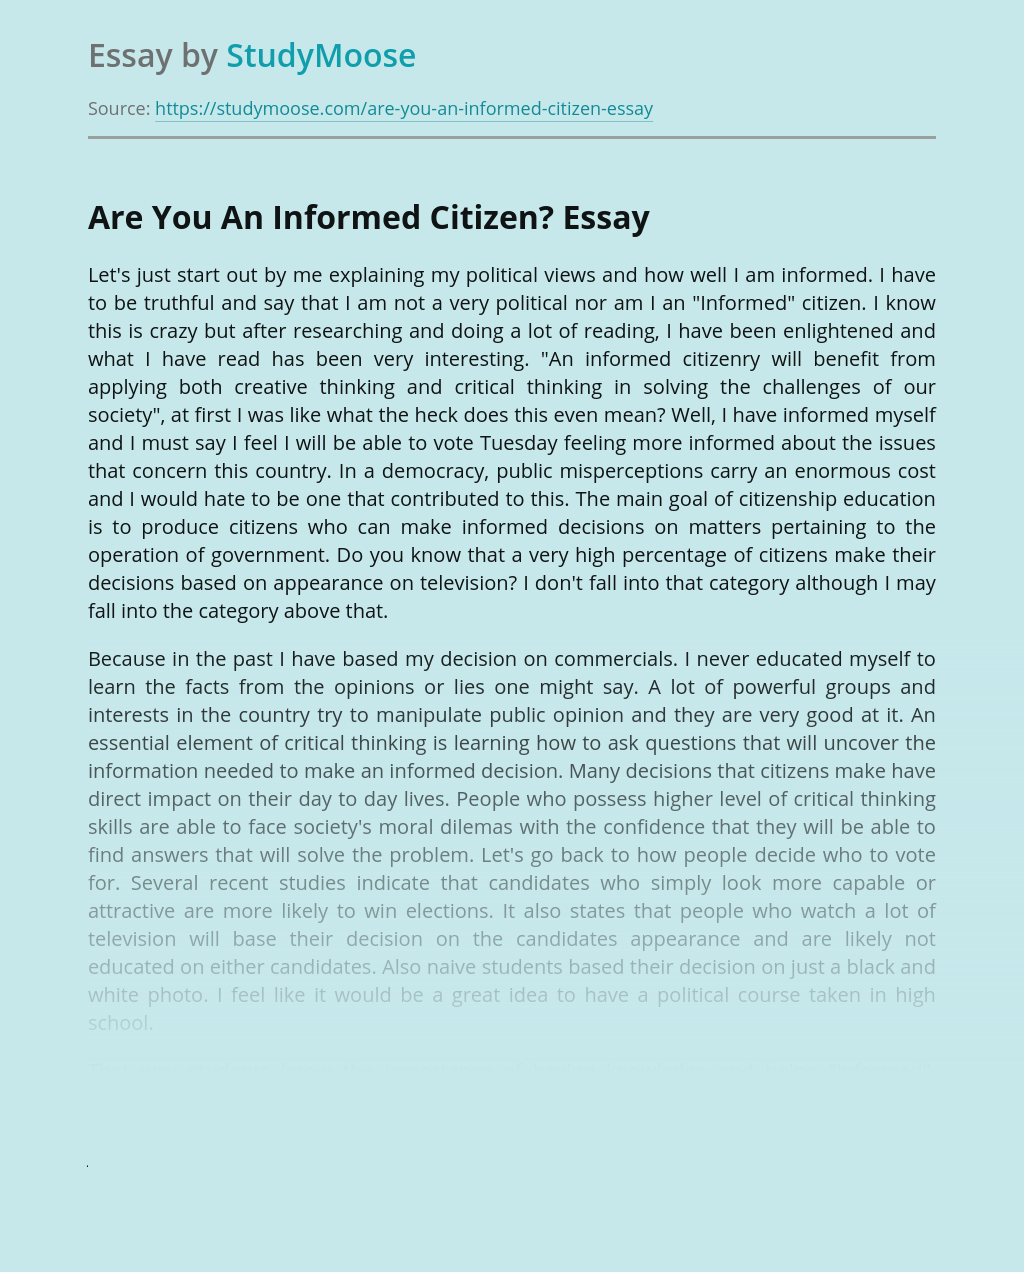 Are You An Informed Citizen?